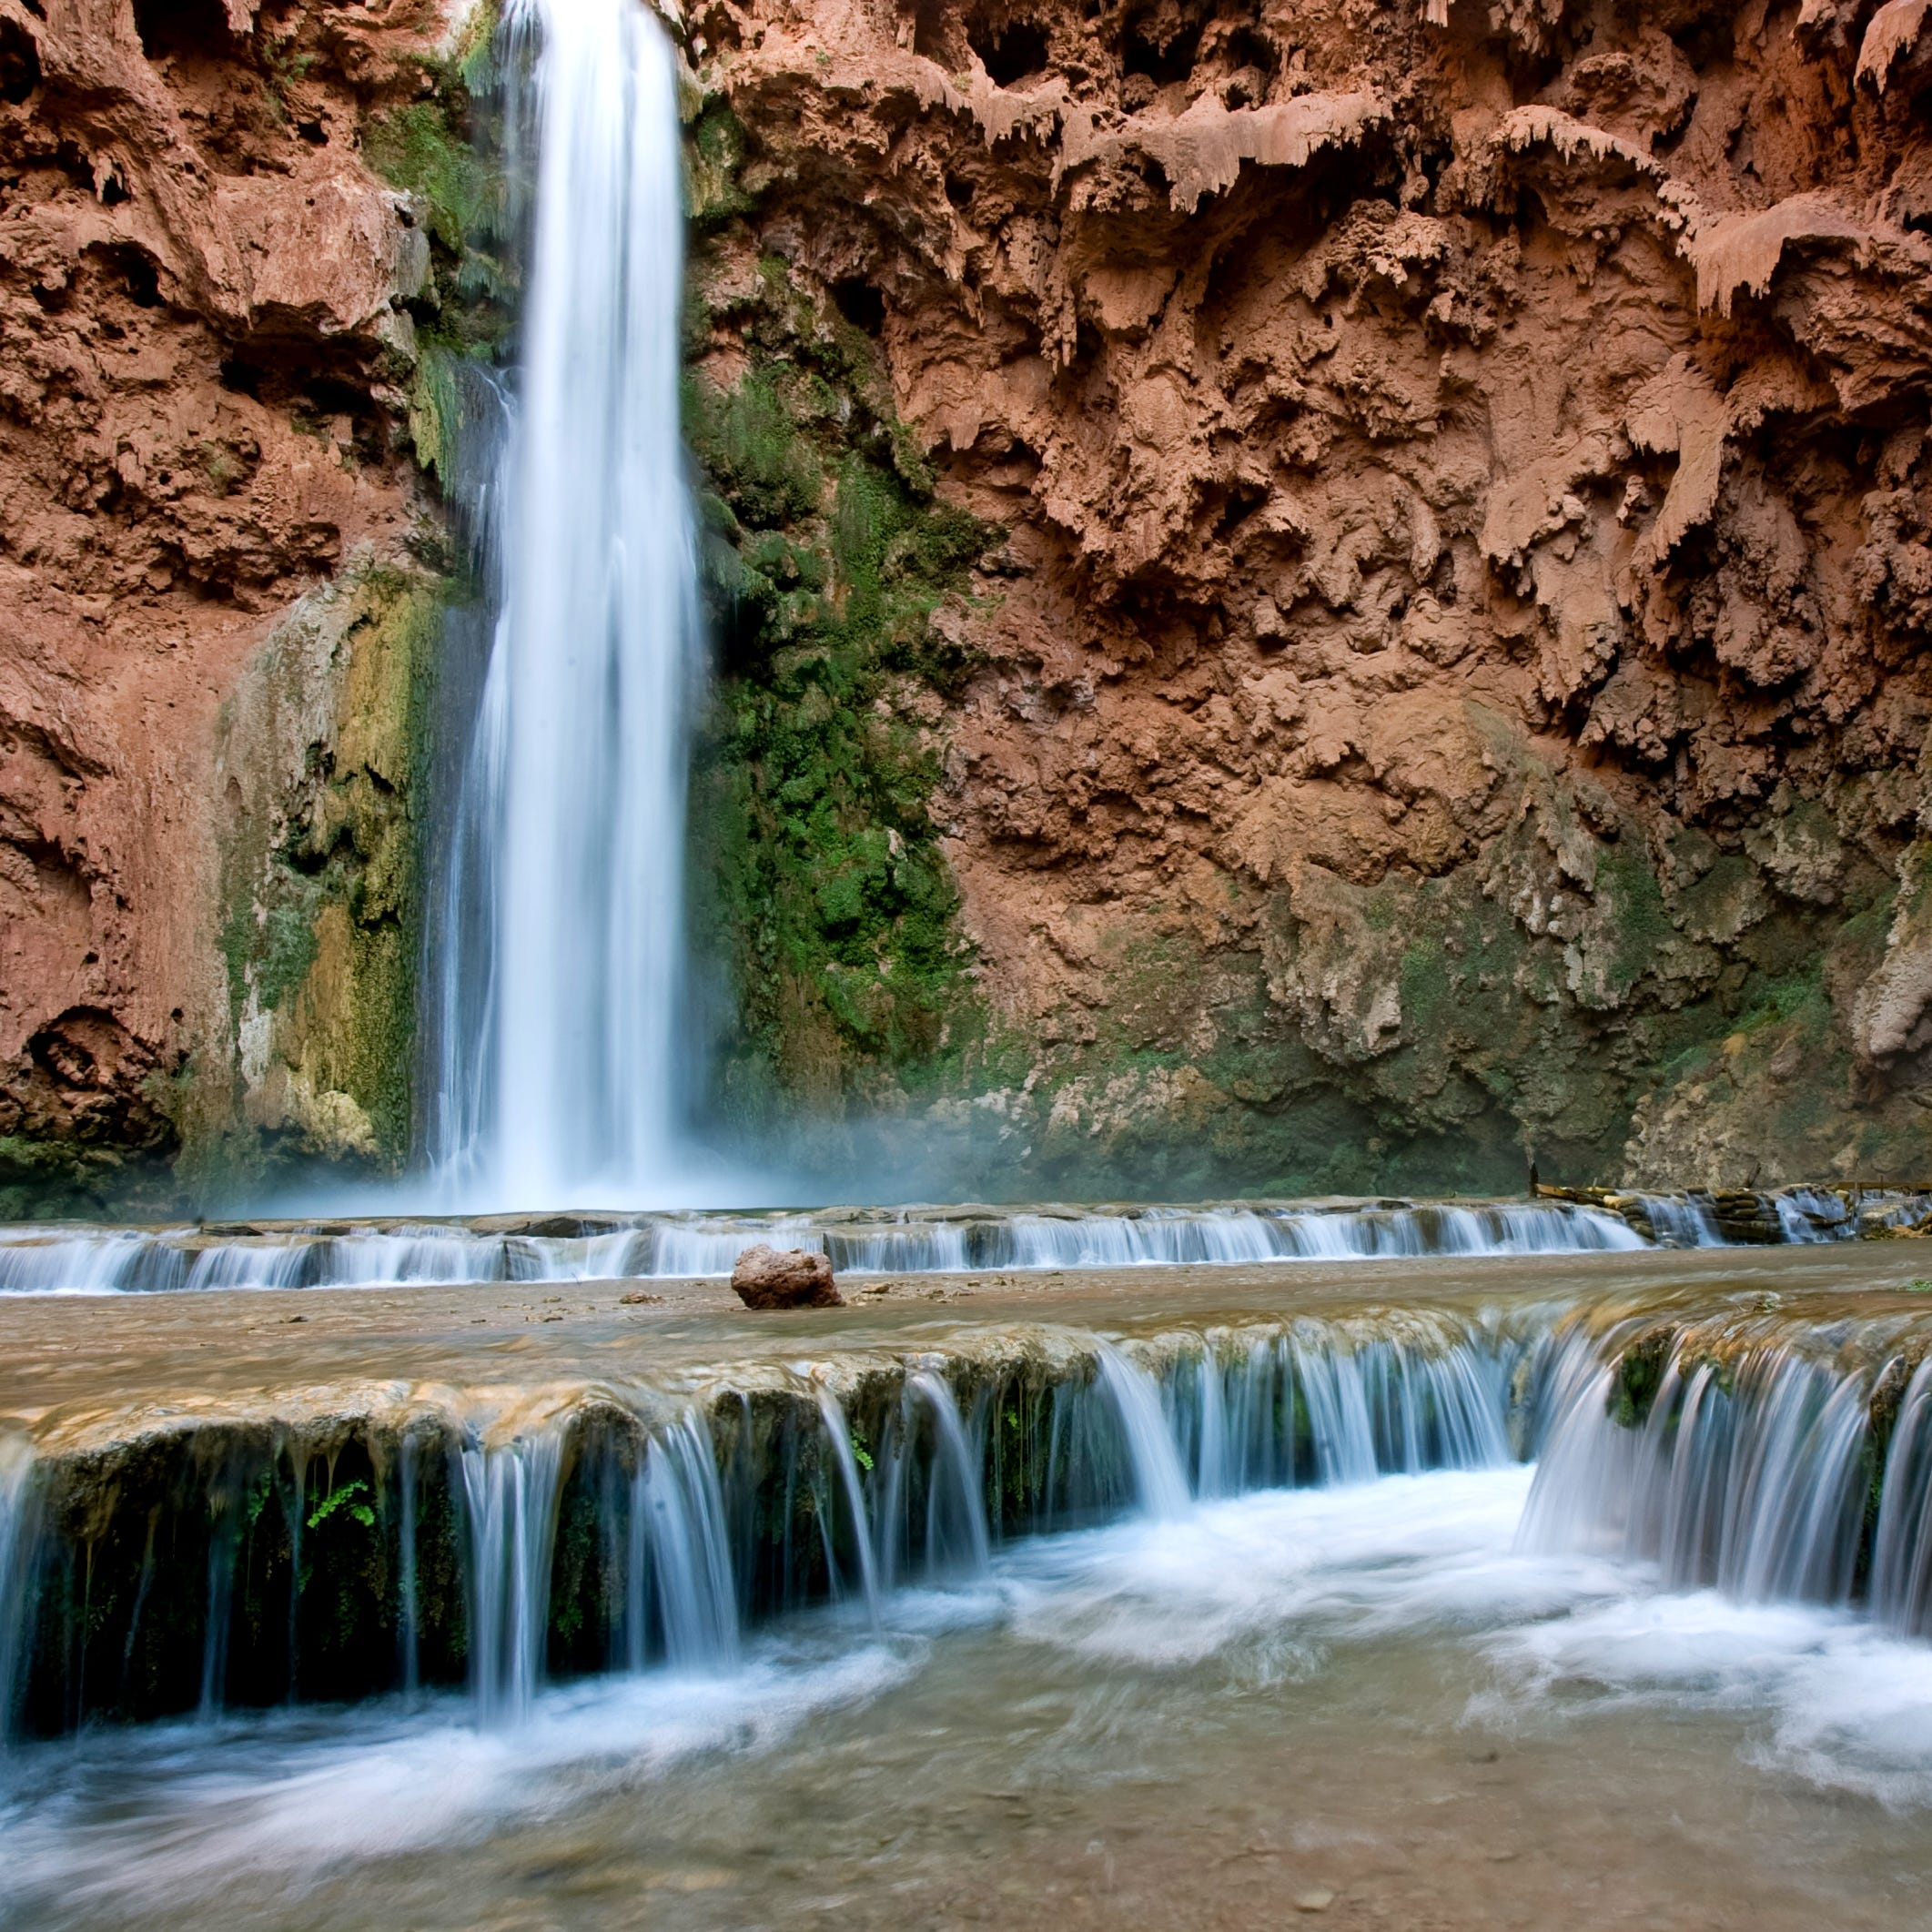 Some Arizona places are beautiful but hard to visit. Here are 5 breathtaking alternatives